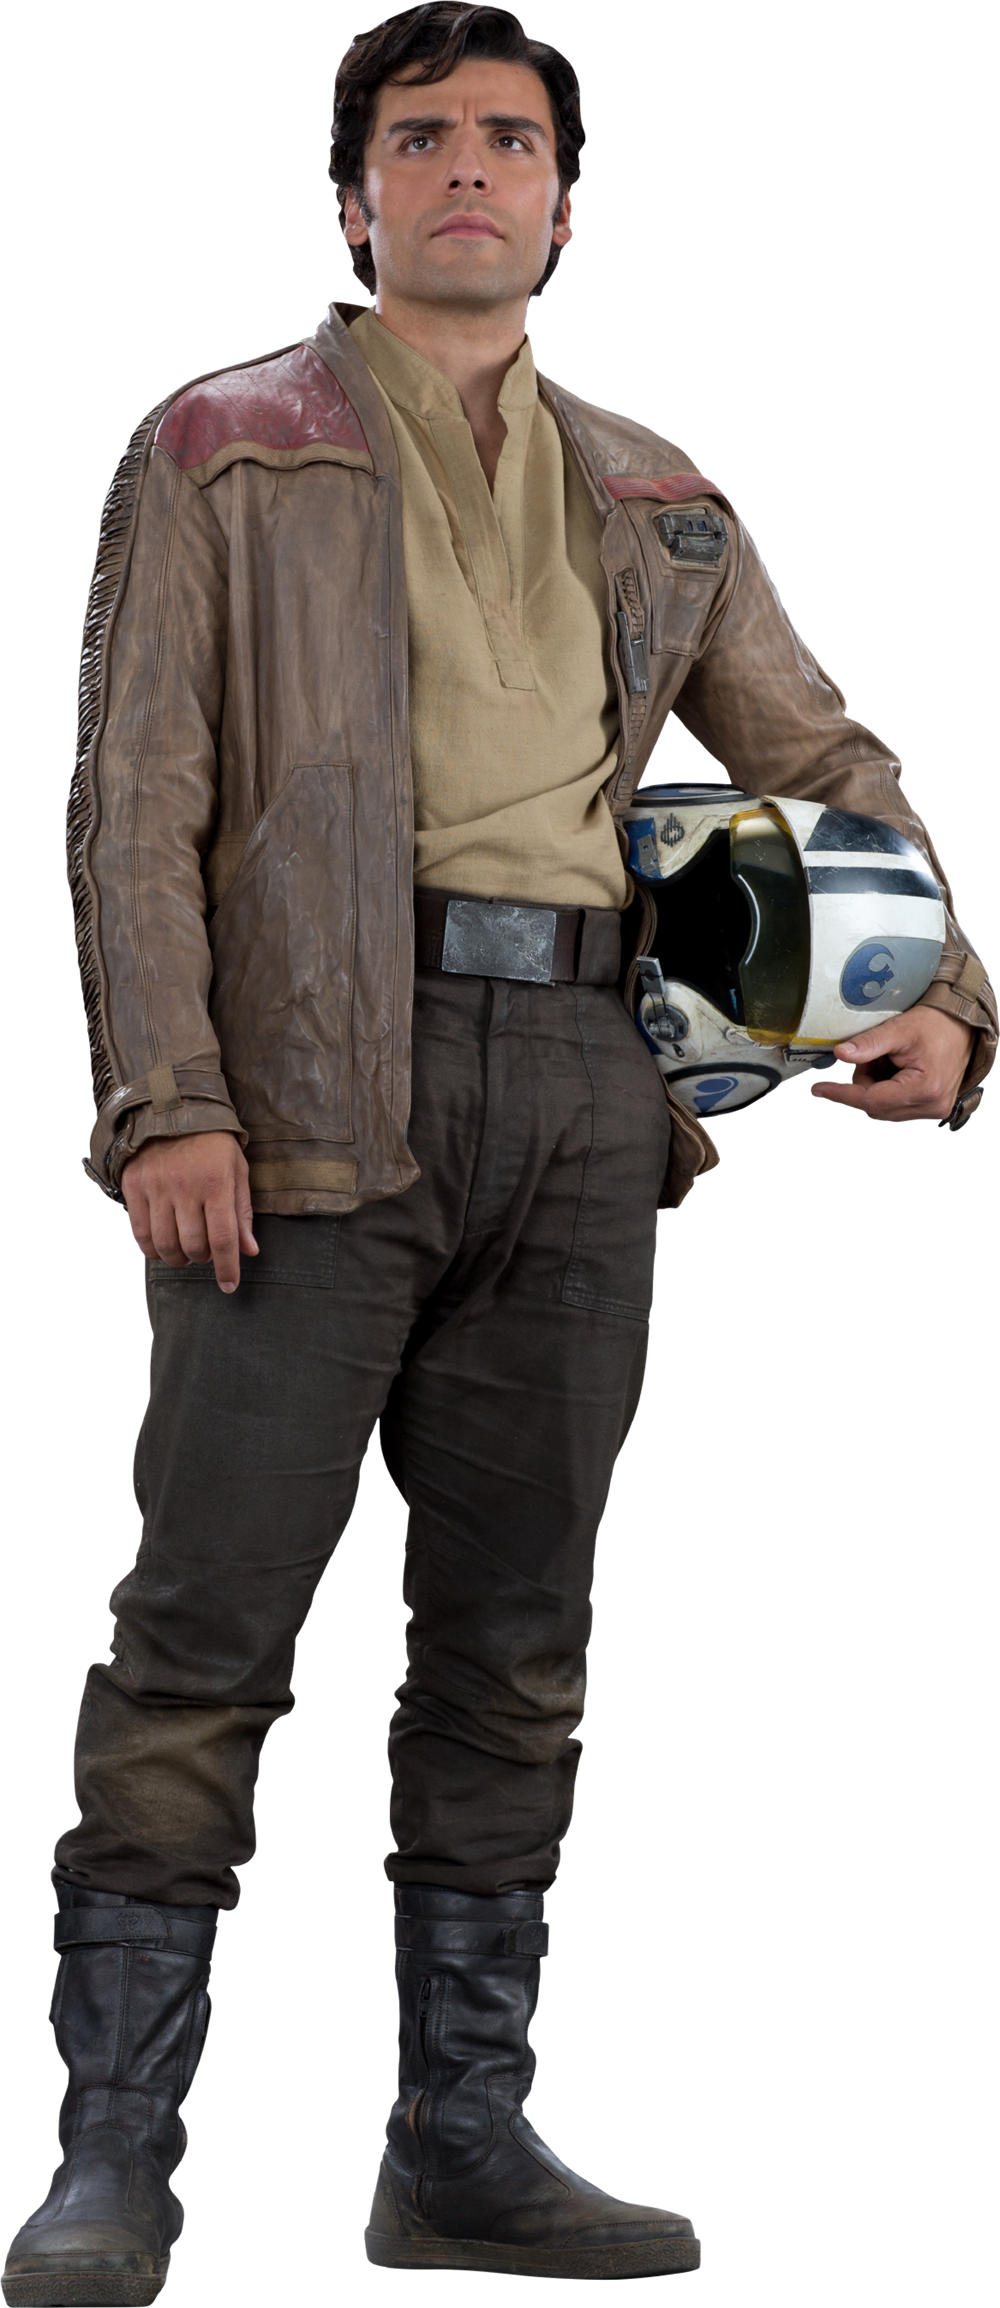 Poe Dameron From Star Wars Episode Vii The Force Awakens By Aracnify I Want That Jacket And Helmet Star Wars Vii Star Wars Movie Star Wars Costumes